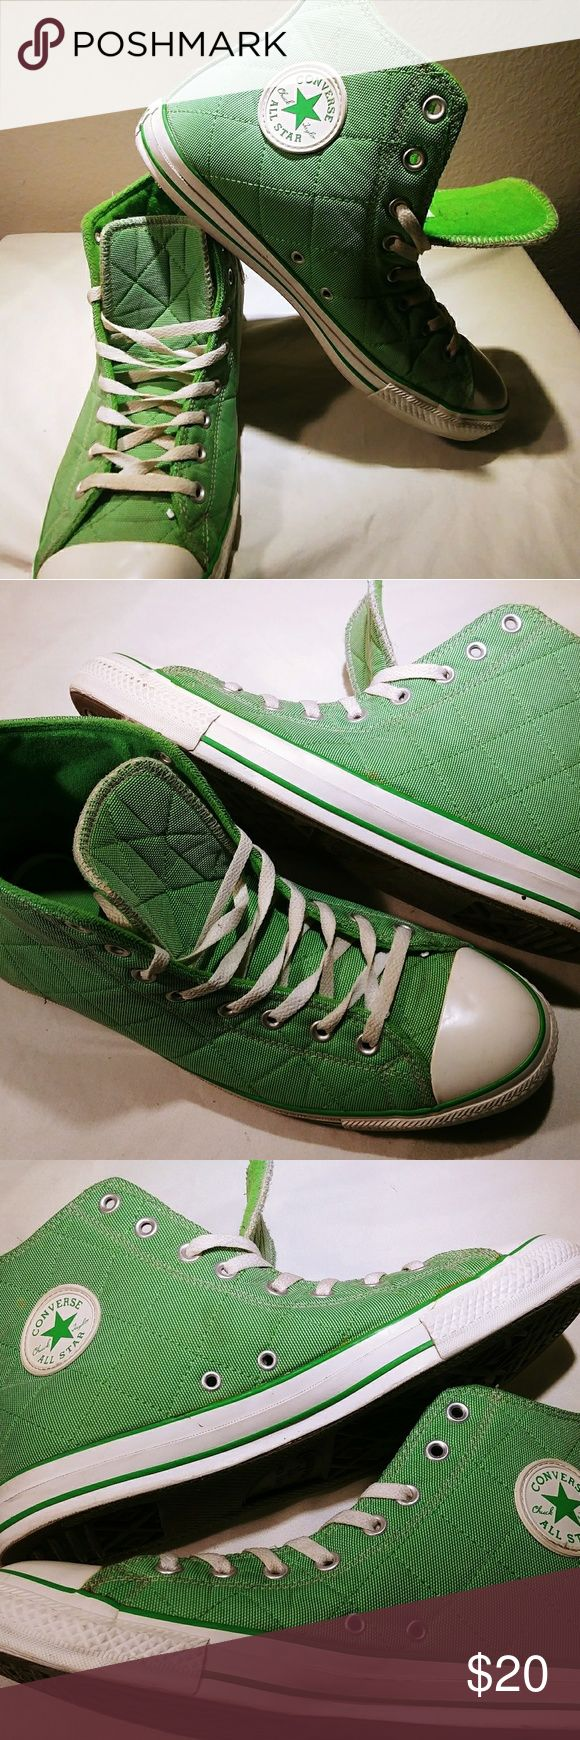 Chuck Taylor John Deere Green Converse sz 11 Item up for sale is a gently used pair of Chuck Taylor's, quilted, John Deere Green, Hytop sneakers. These are unisex and fit mens sz 11 and women's 13. These are used, in great condition, with a lot of life left to them. Please ask any questions and thanks for looking. Converse Shoes Sneakers